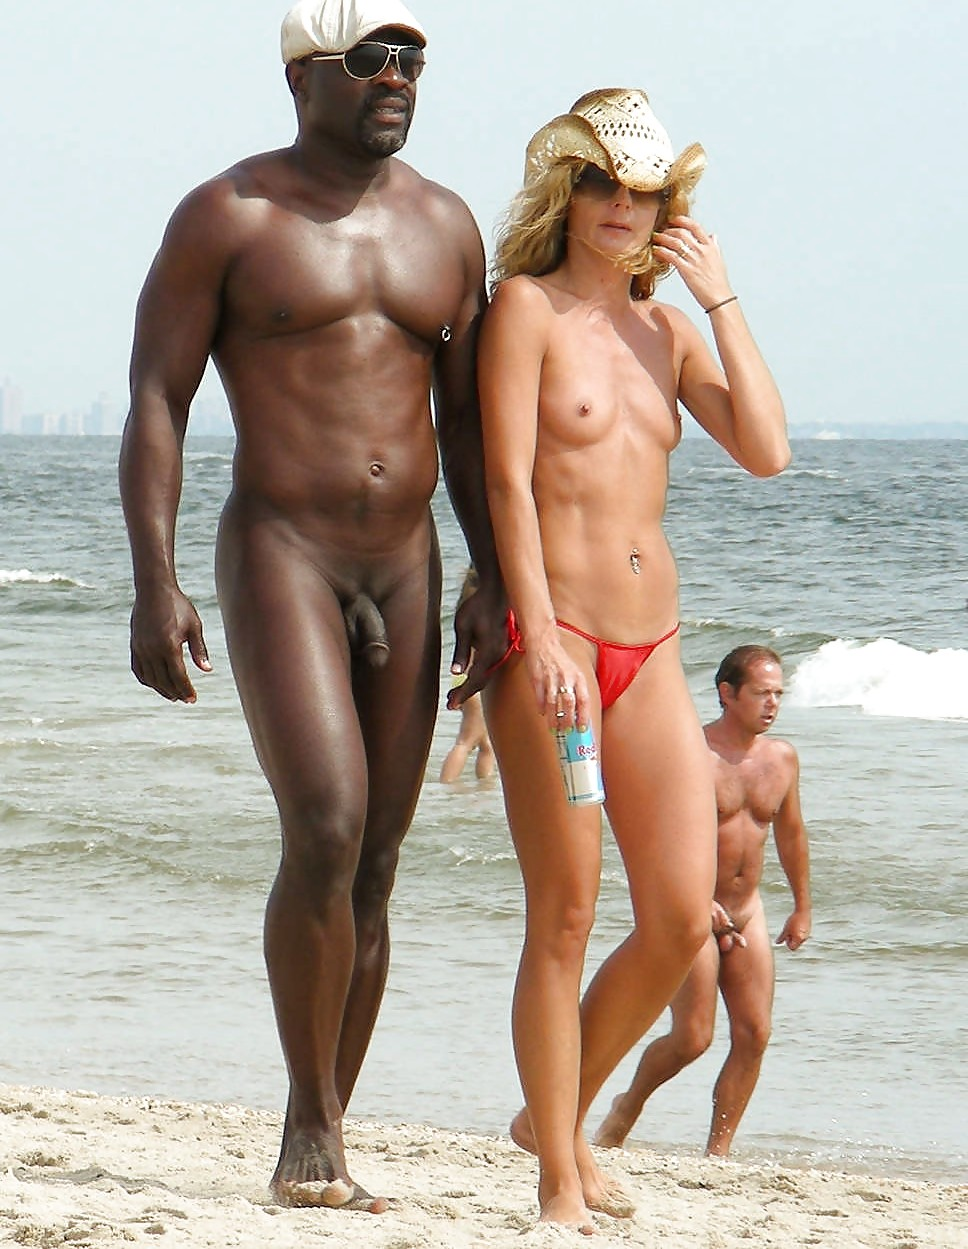 Nude beach men at black